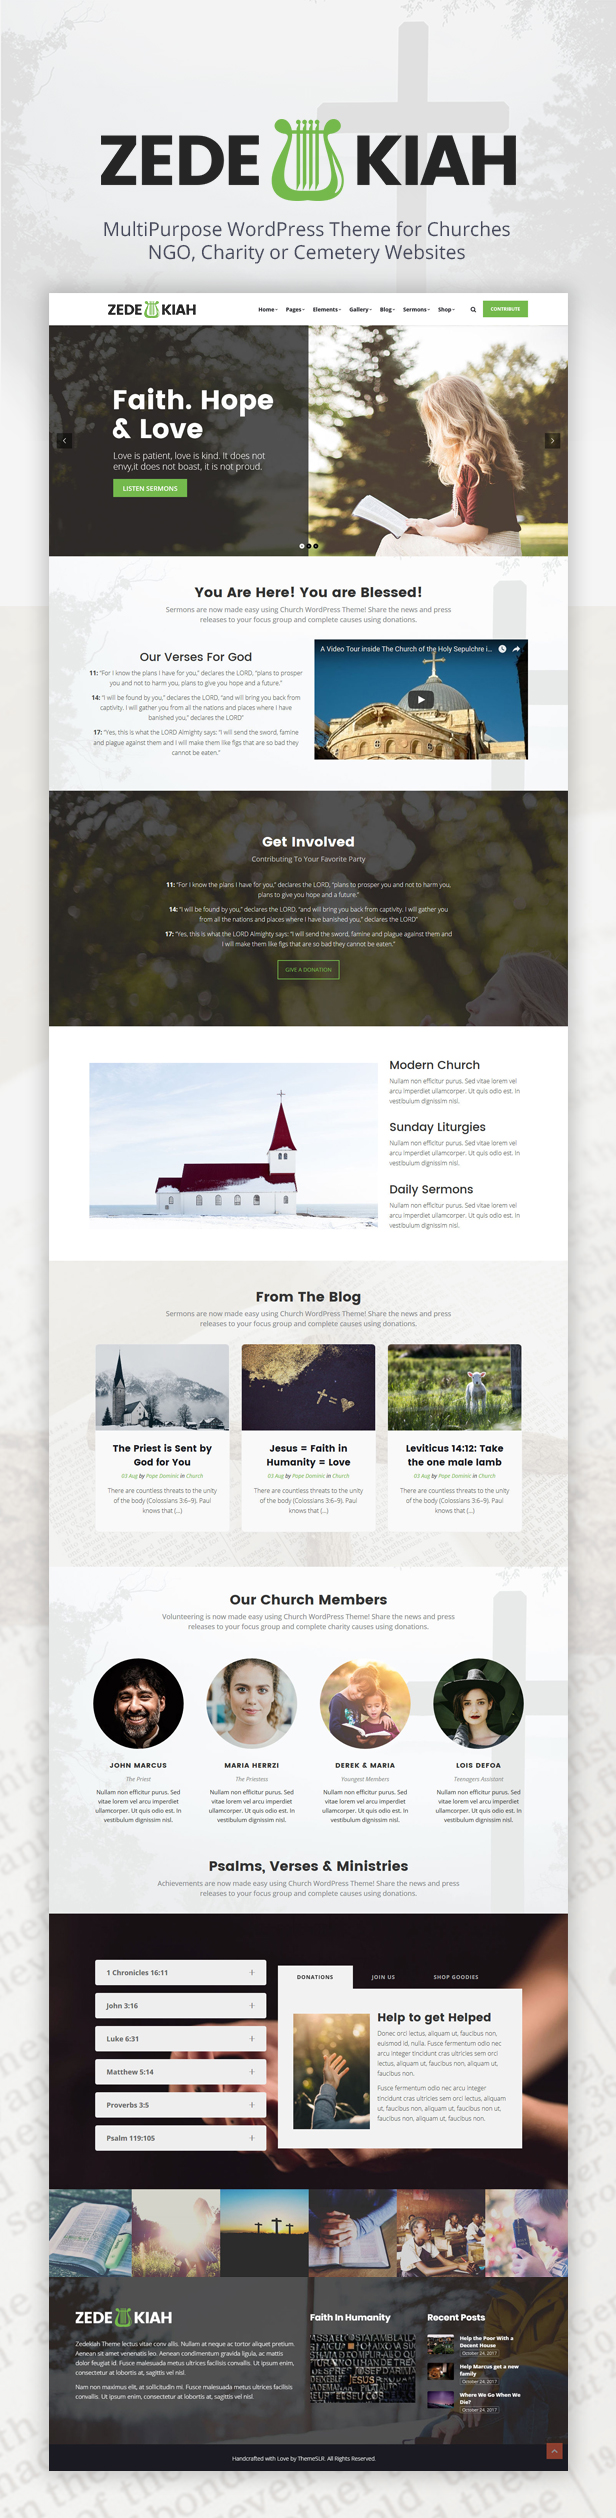 Zedekiah - MultiPurpose Church & Religion WordPress Theme - 1